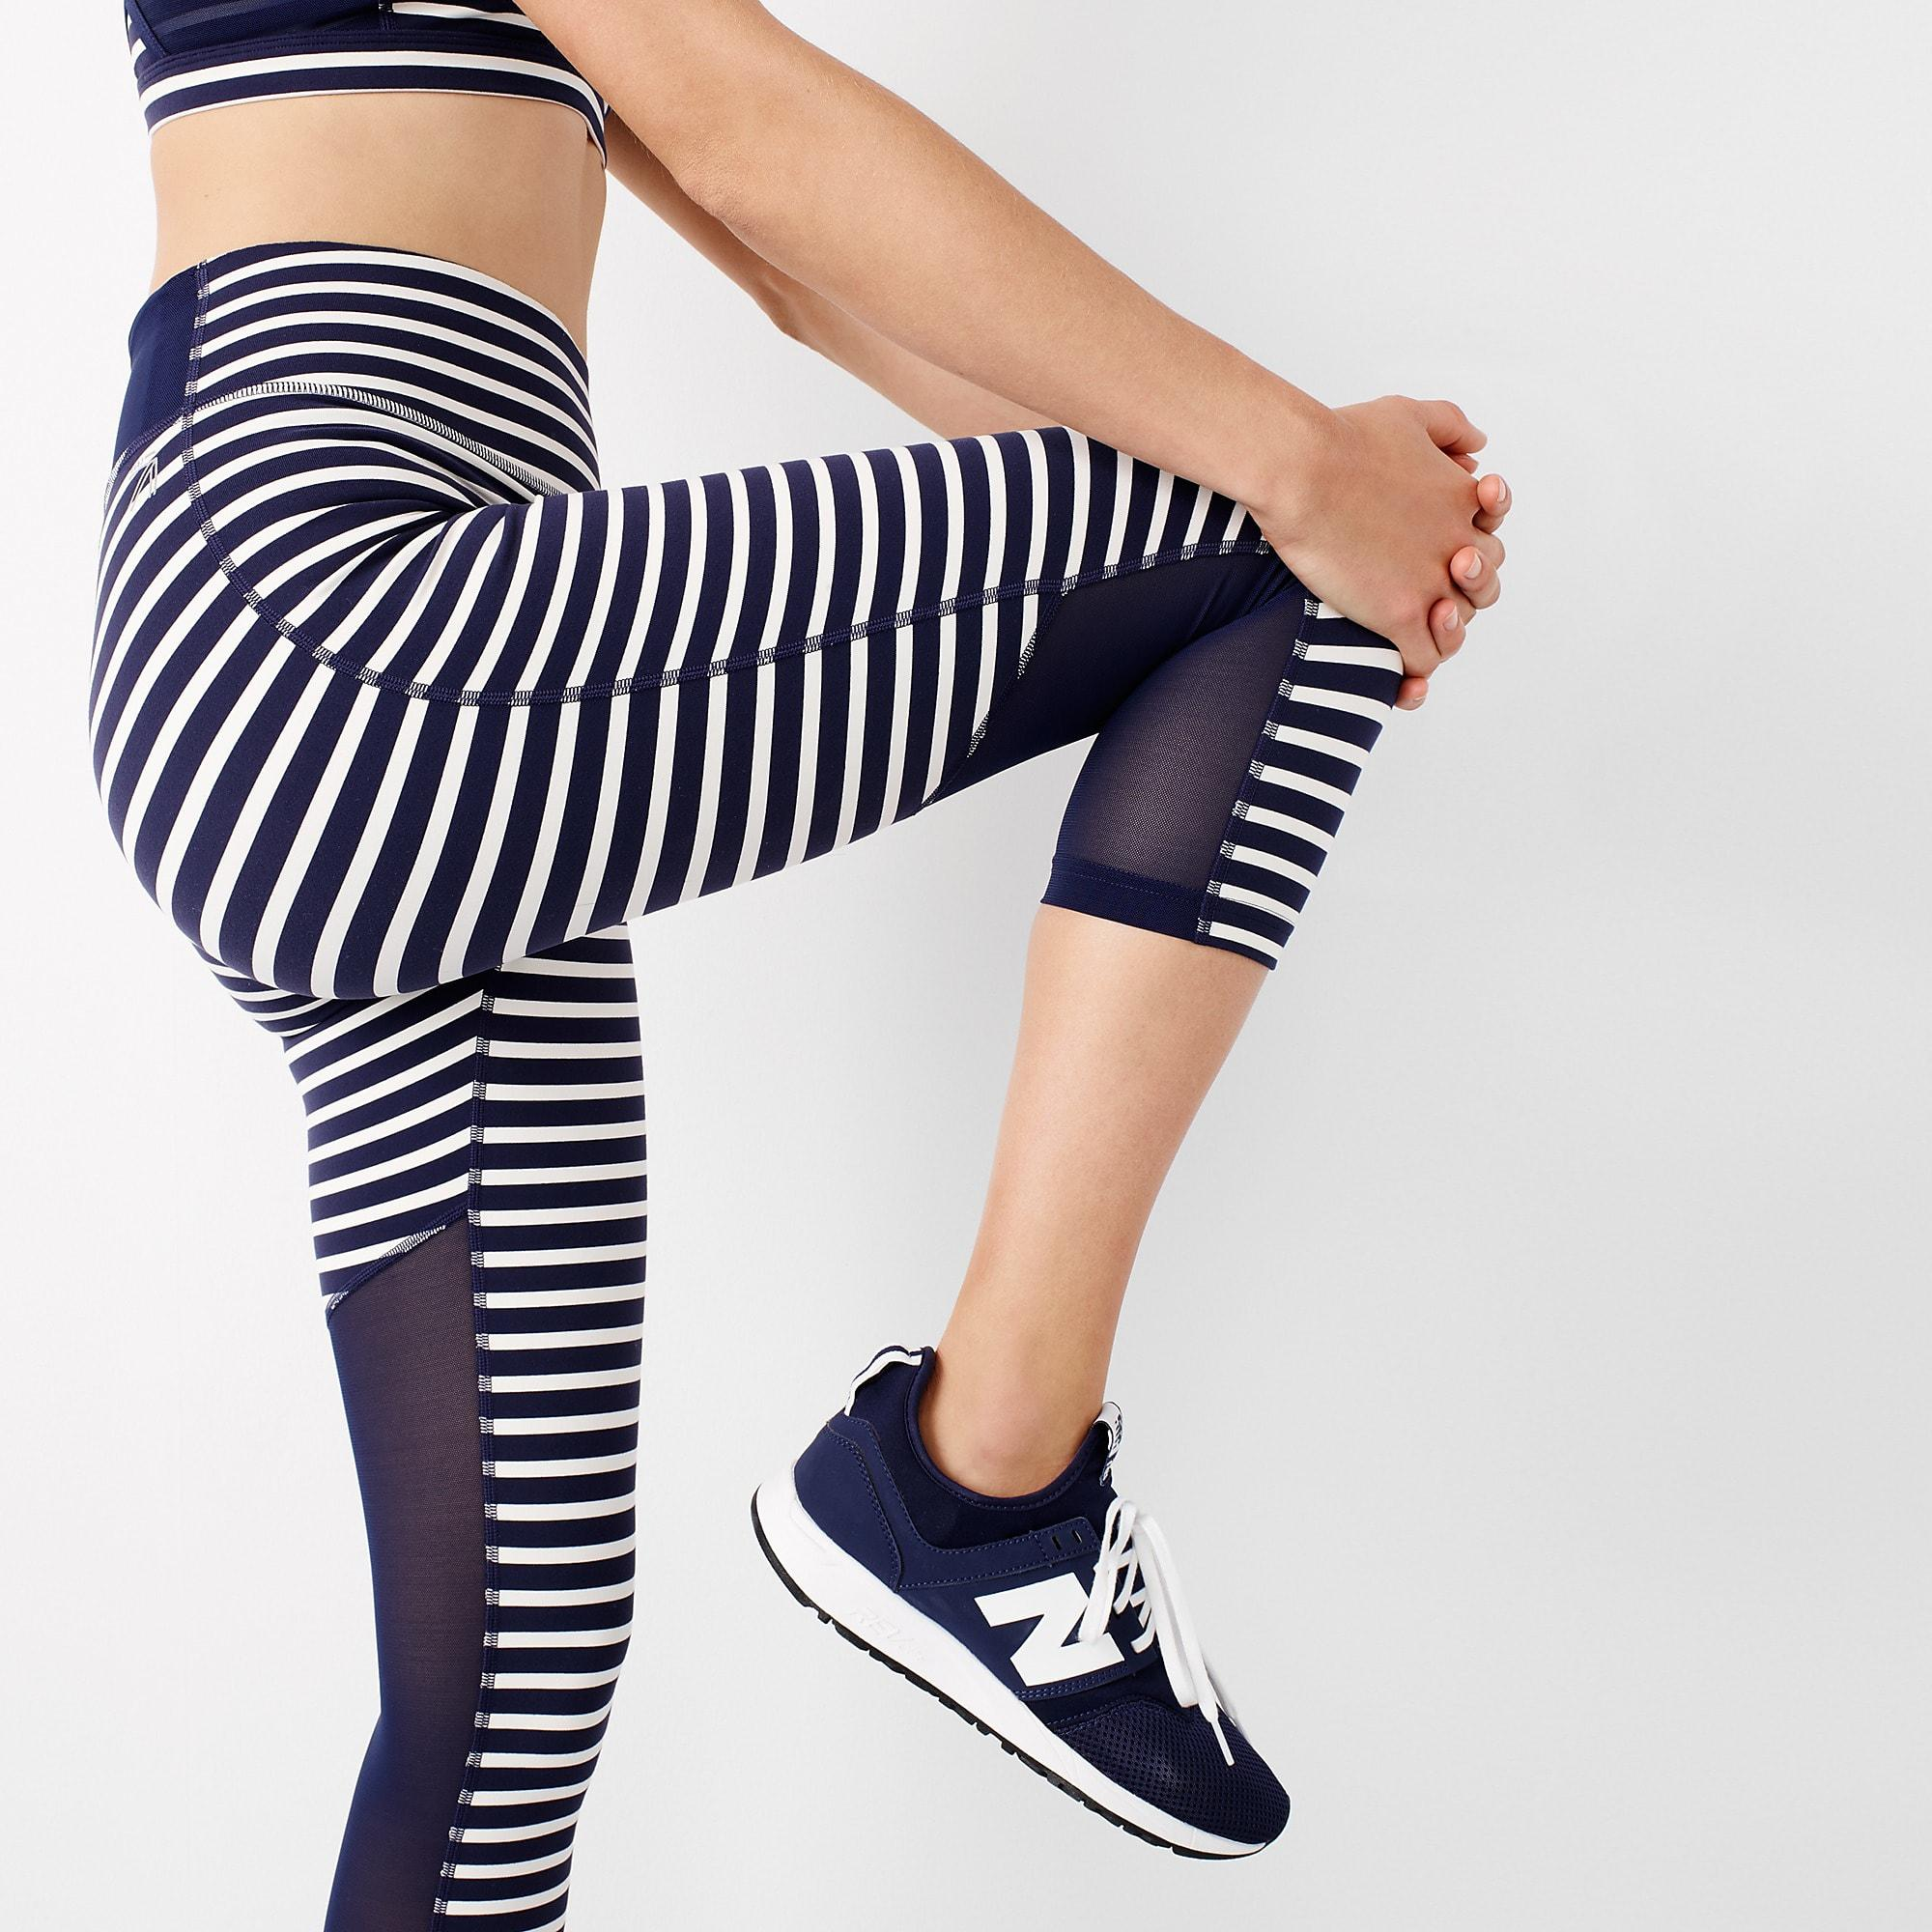 dbfd067da0909 New Balance High-waisted Performance Capri leggings In Stripe With ...